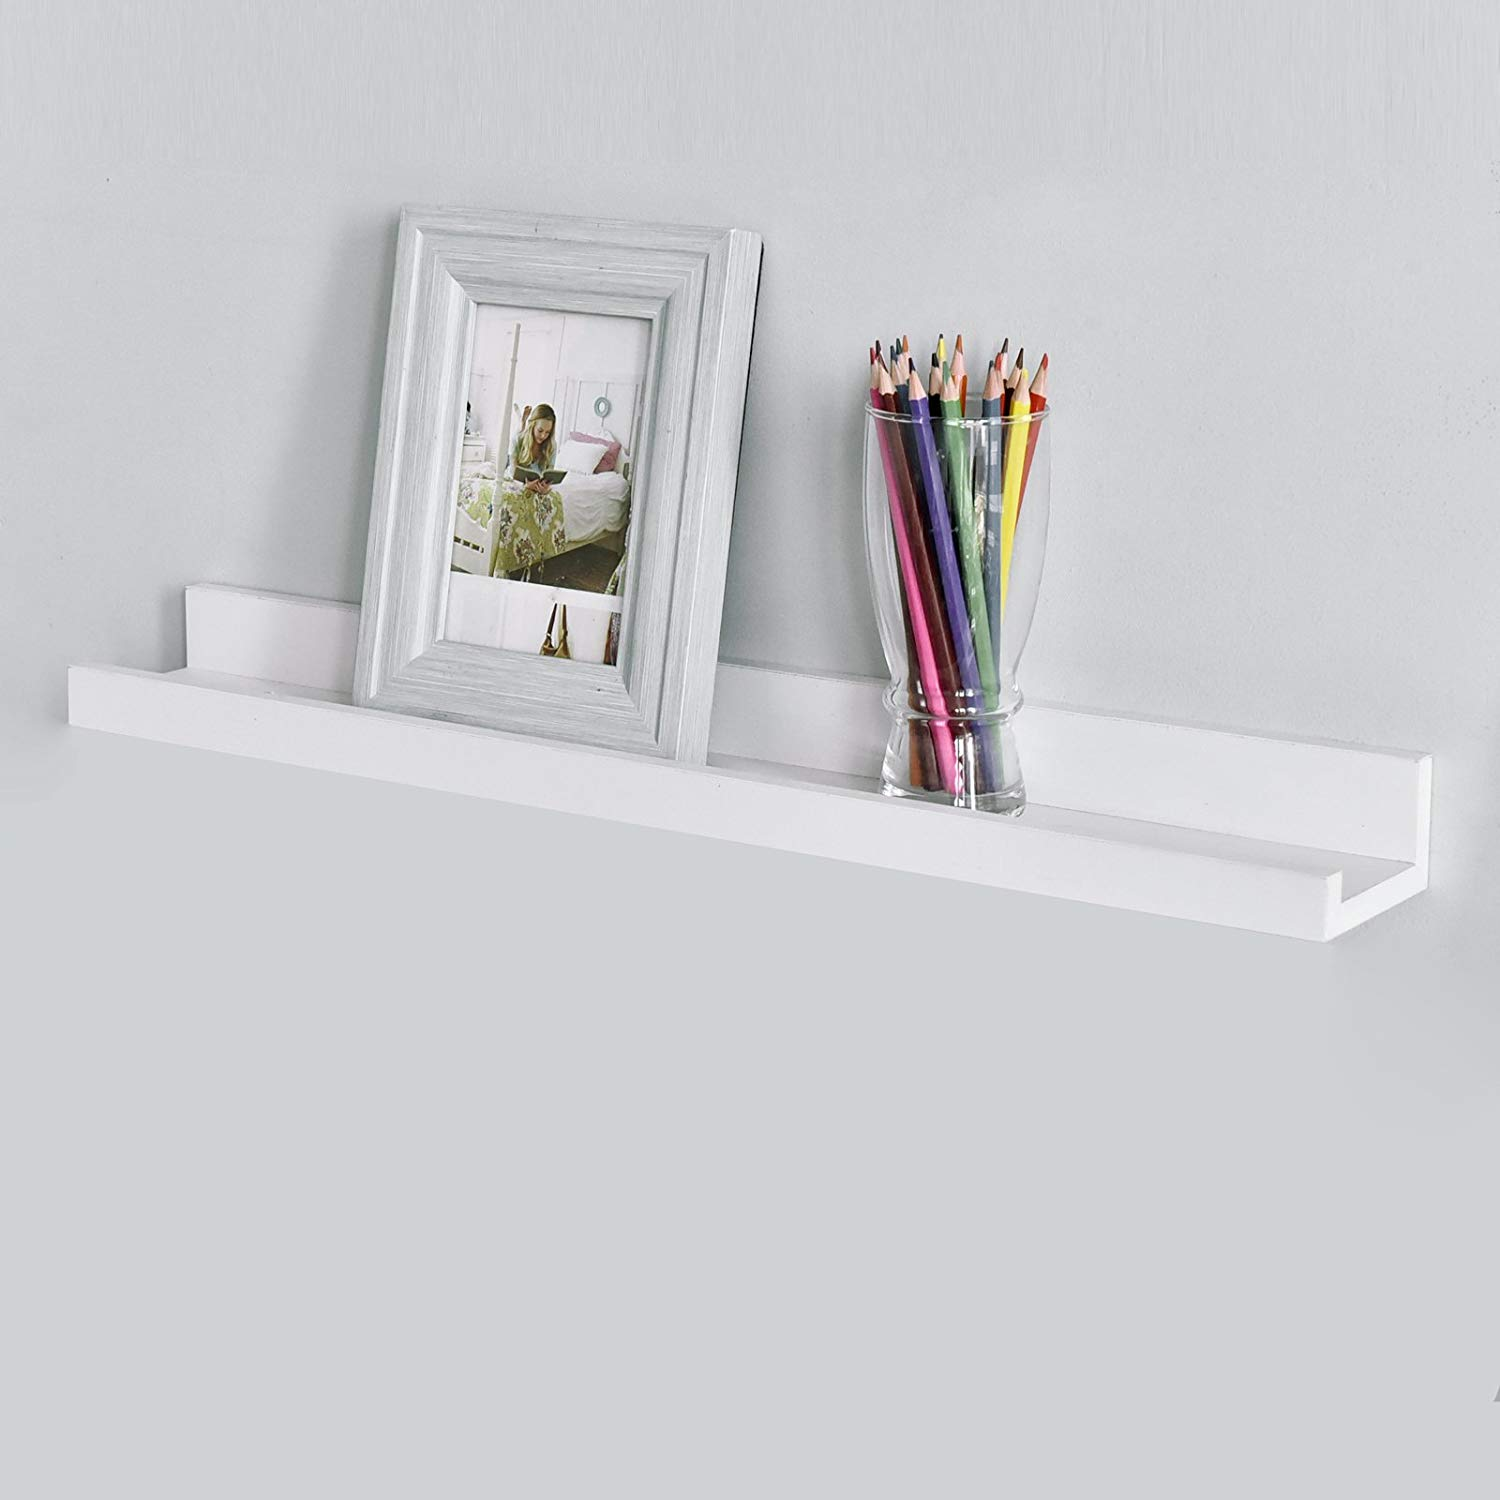 welland ture ledge shelf white shelves with floating inch home kitchen narrow towel stainless steel wall mounted coat rack shelving units unique racks leather antique plastic